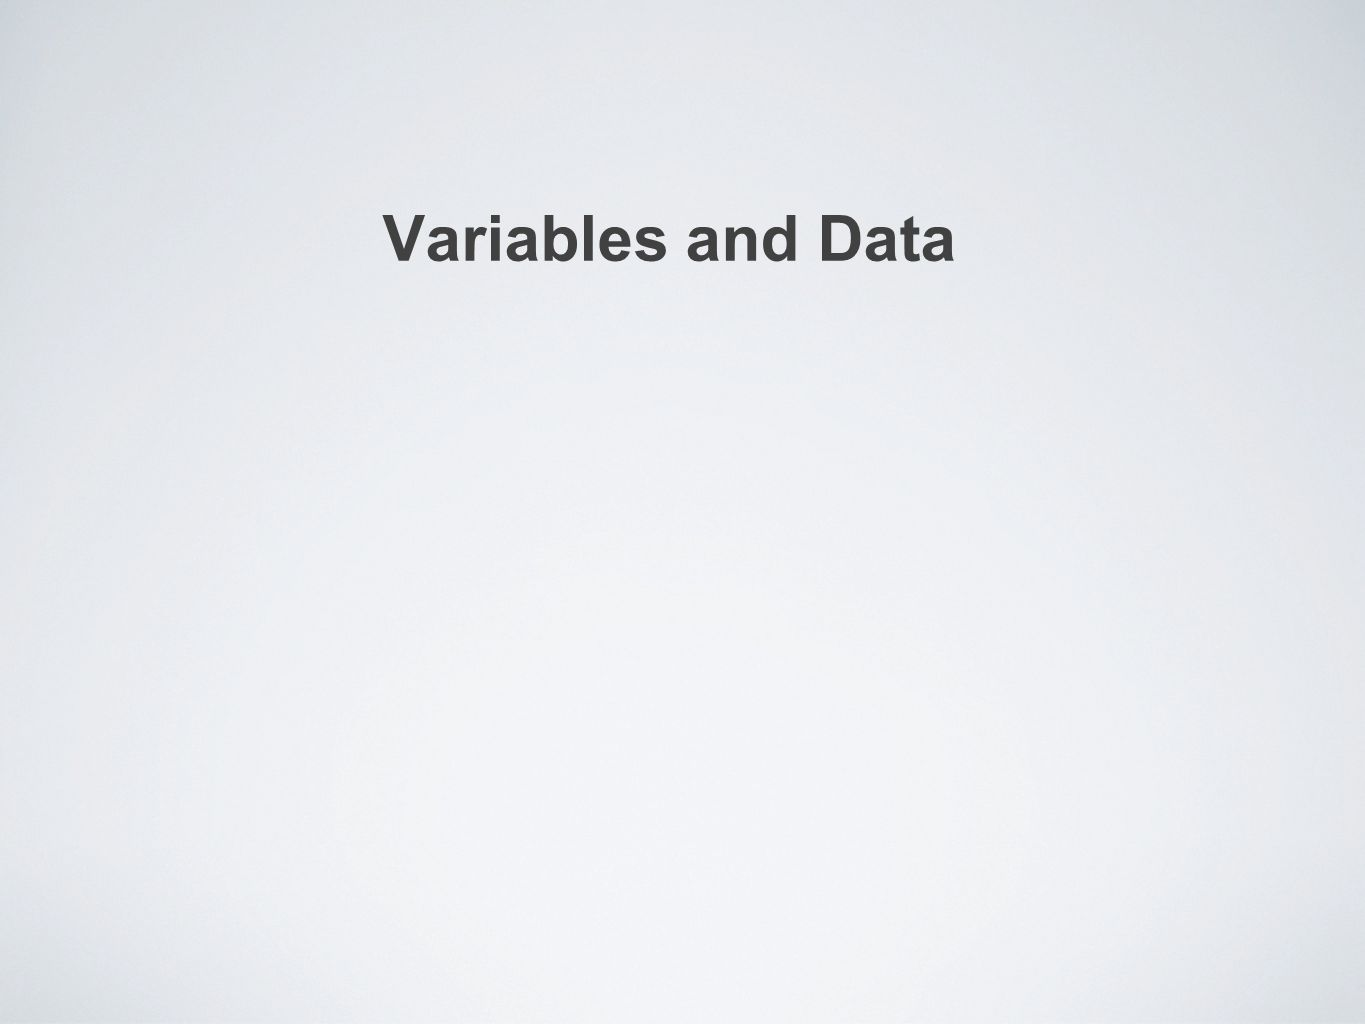 Variables and Data